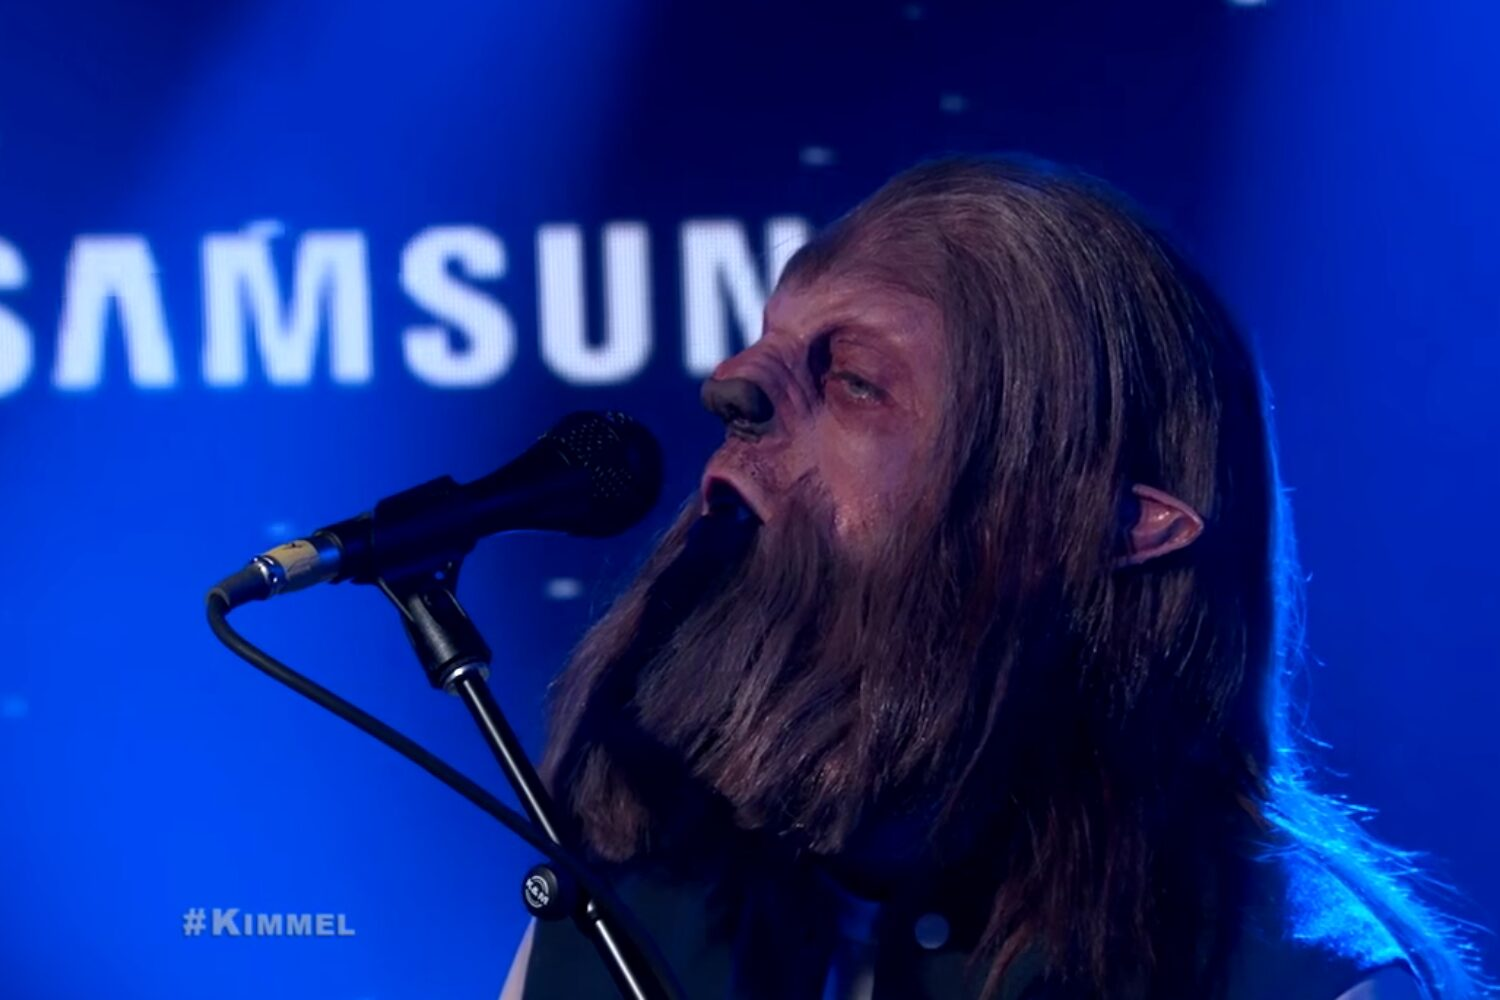 M83 brings 'Junk' to the telly on Kimmel